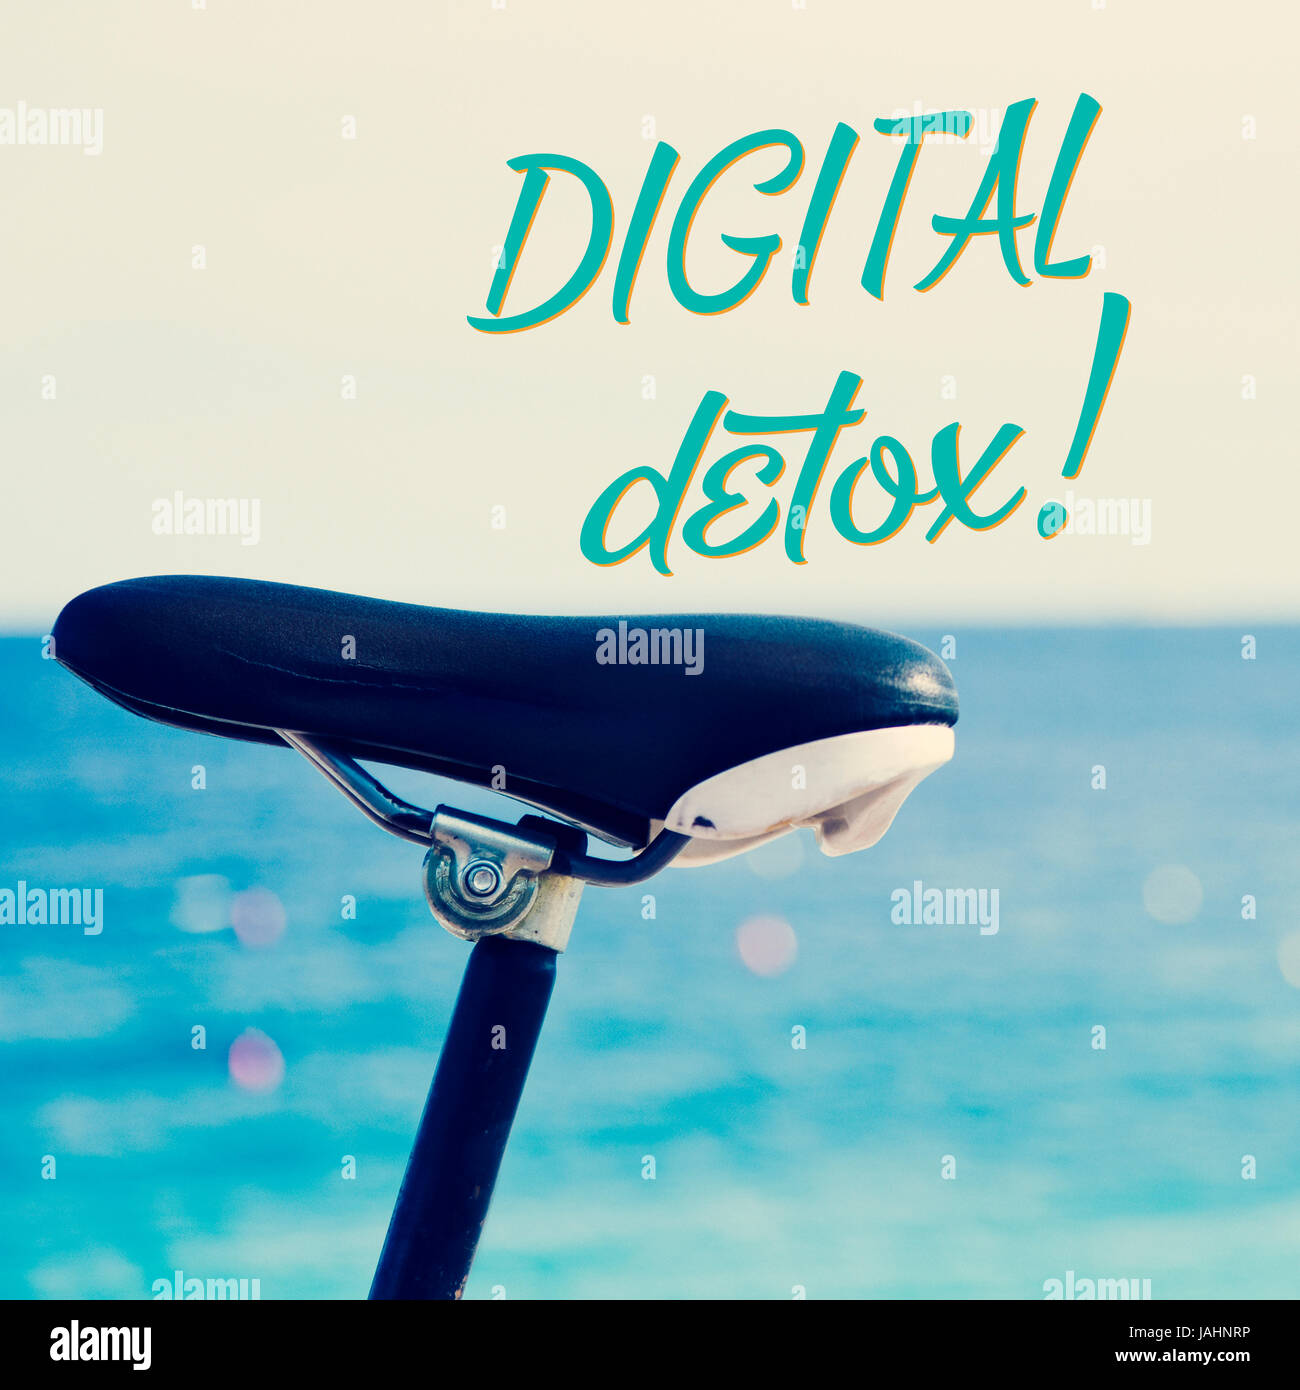 closeup of the saddle of a bicycle parked next to the sea and the text digital detox - Stock Image